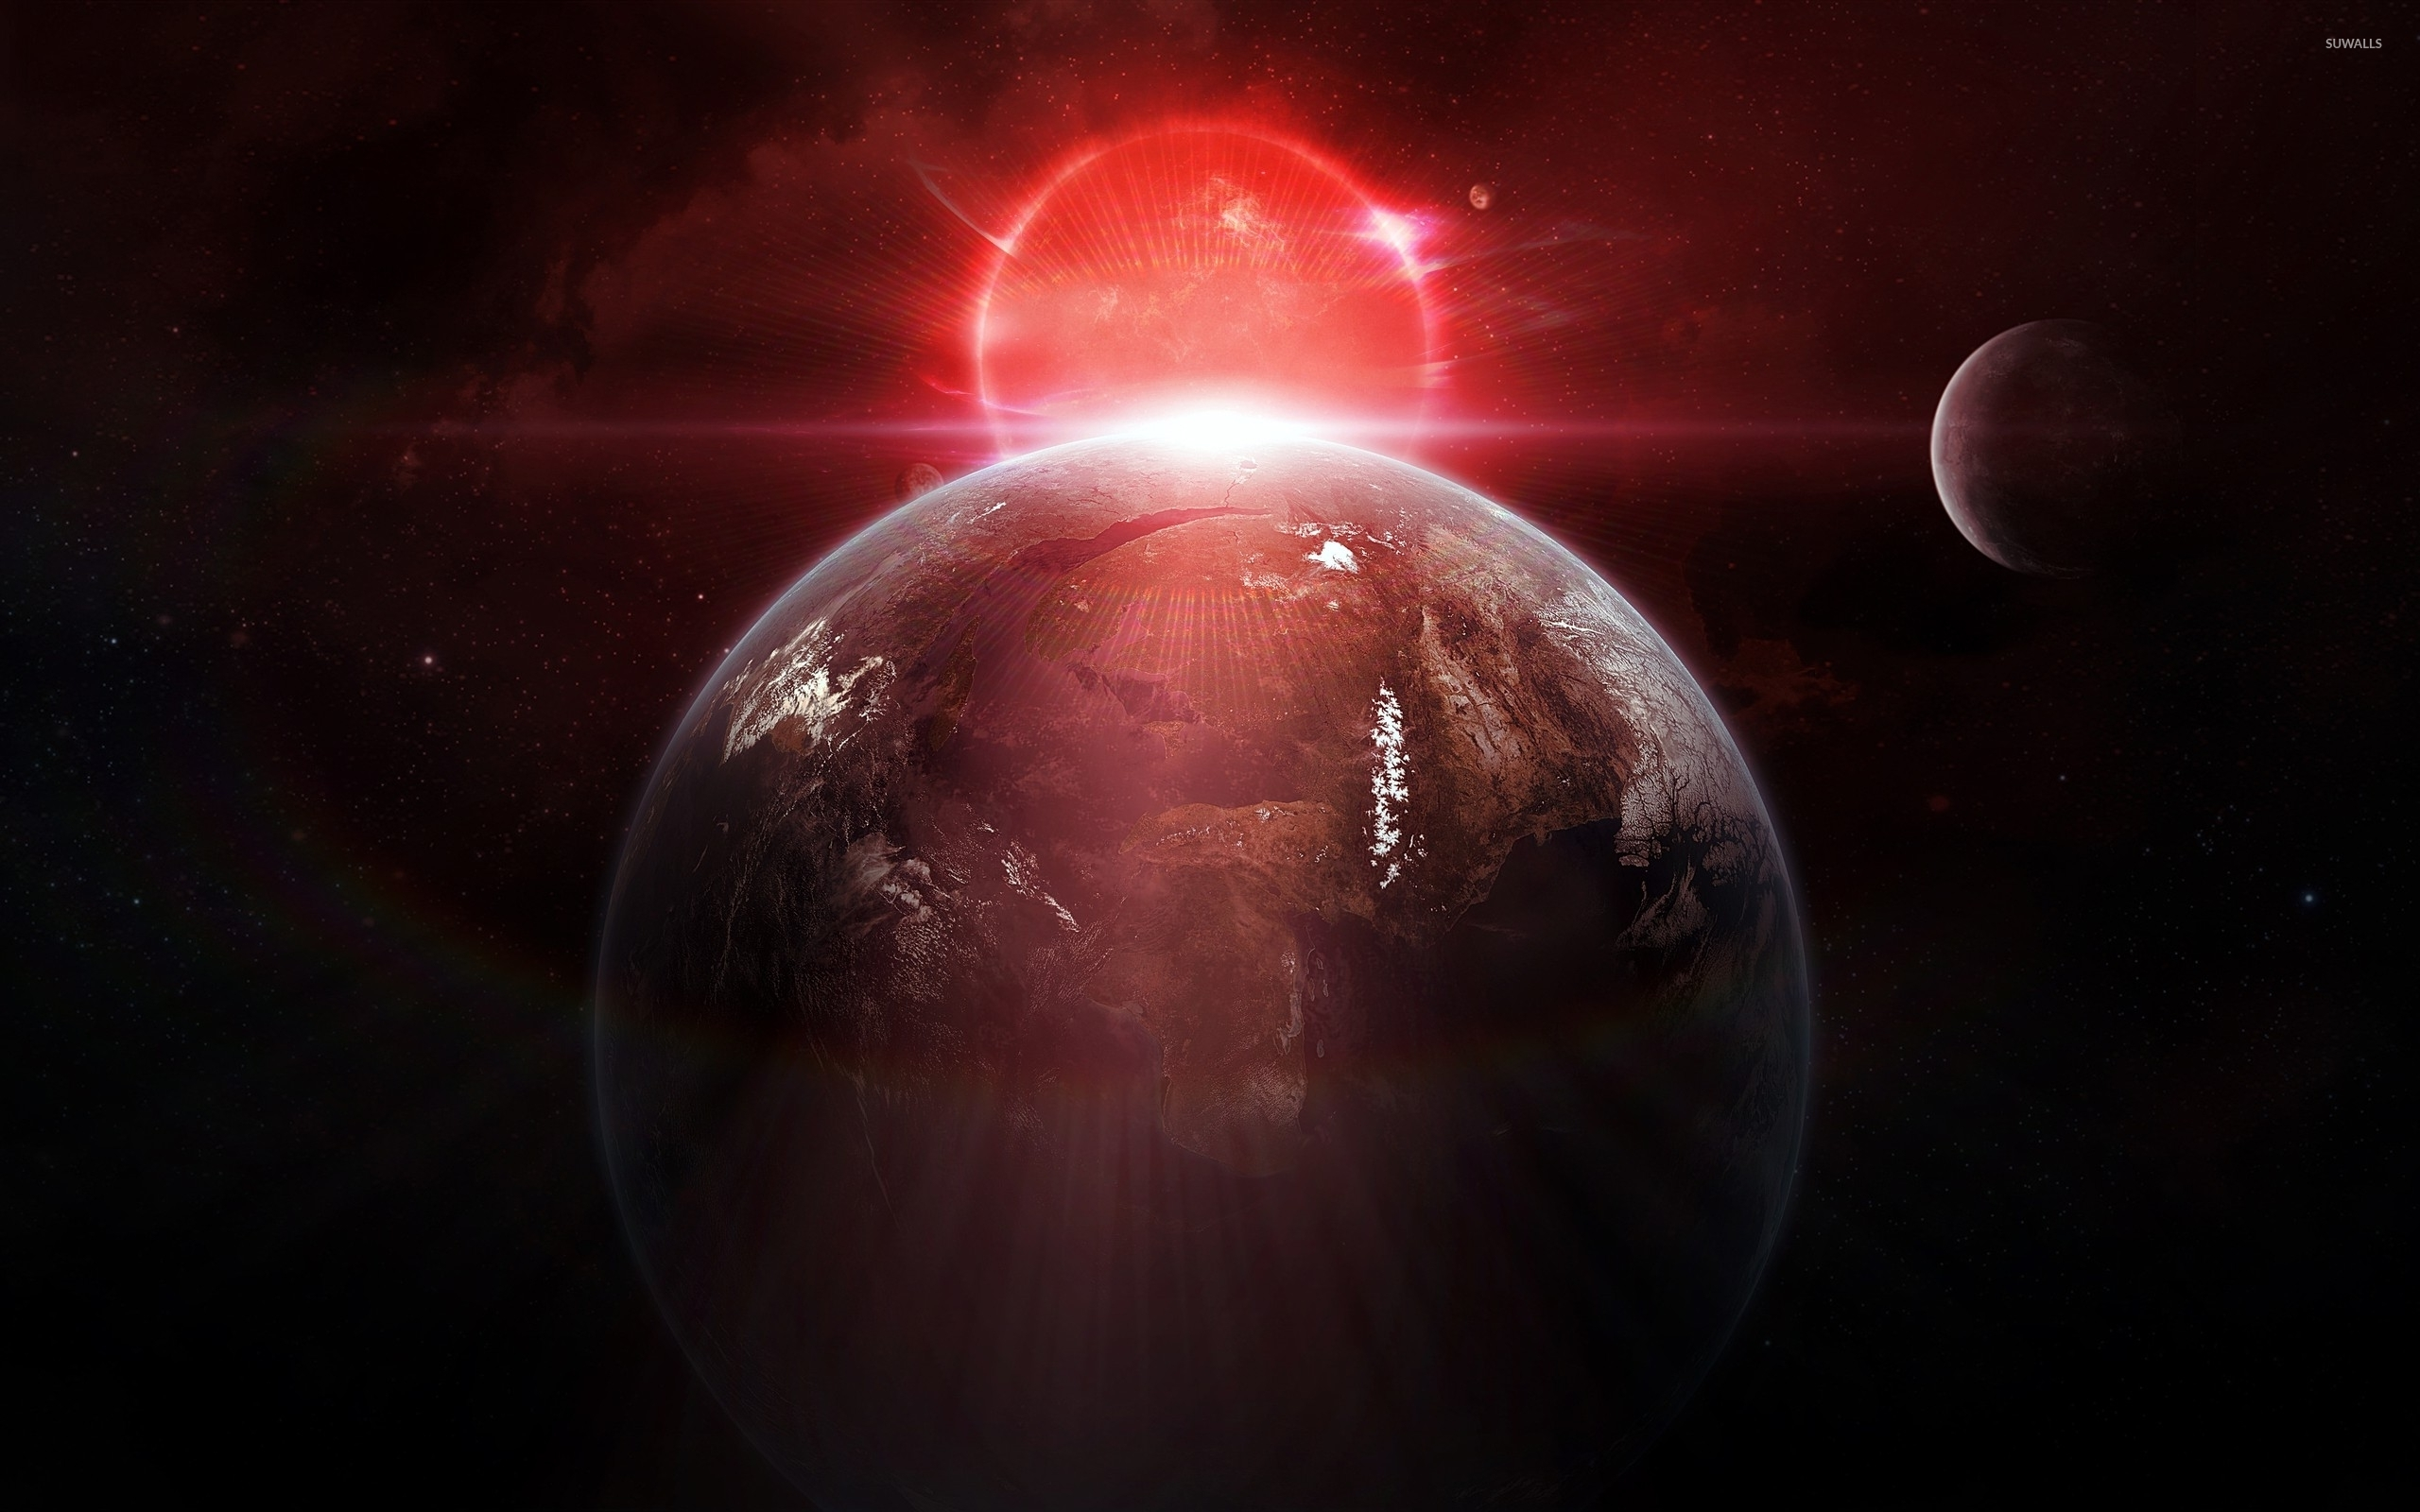 Red Sun Behind The Planet Wallpaper